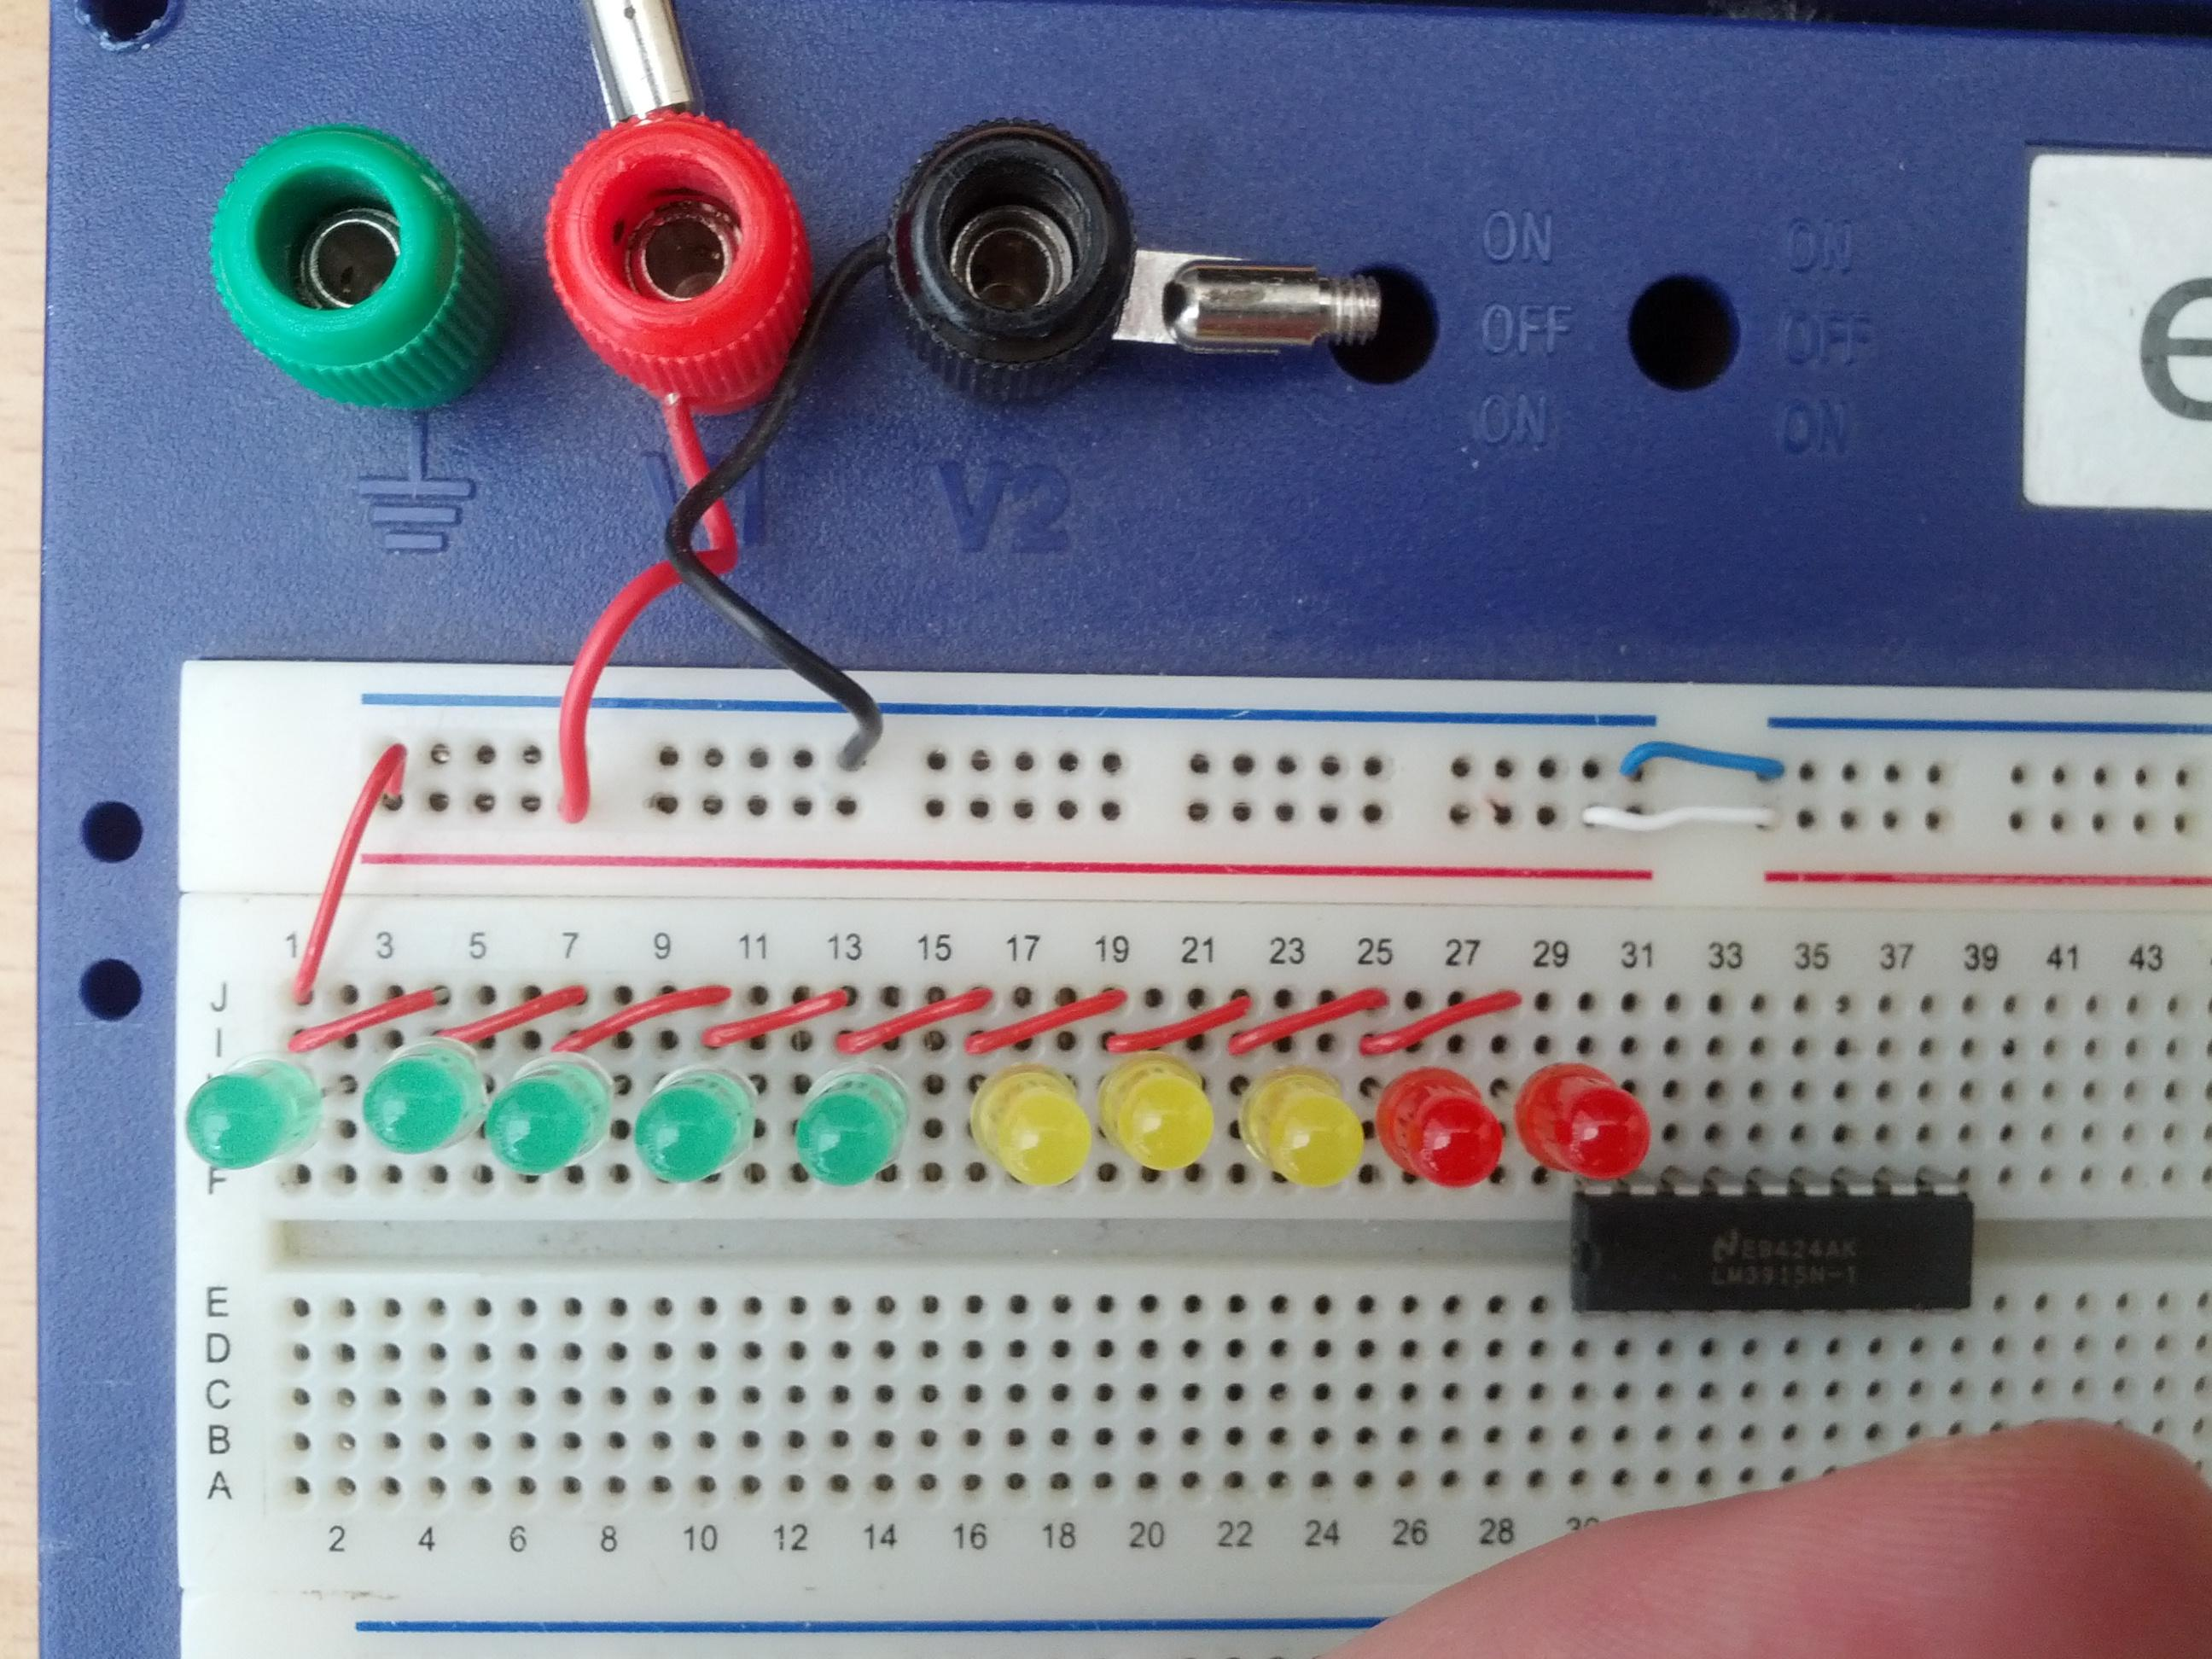 Adding Stereo Vu Meters To A Turntable Michael Duerinckx How Build Meter 1 Circuit Diagram Row Of Leds With The Anodes Wired Together Neatly